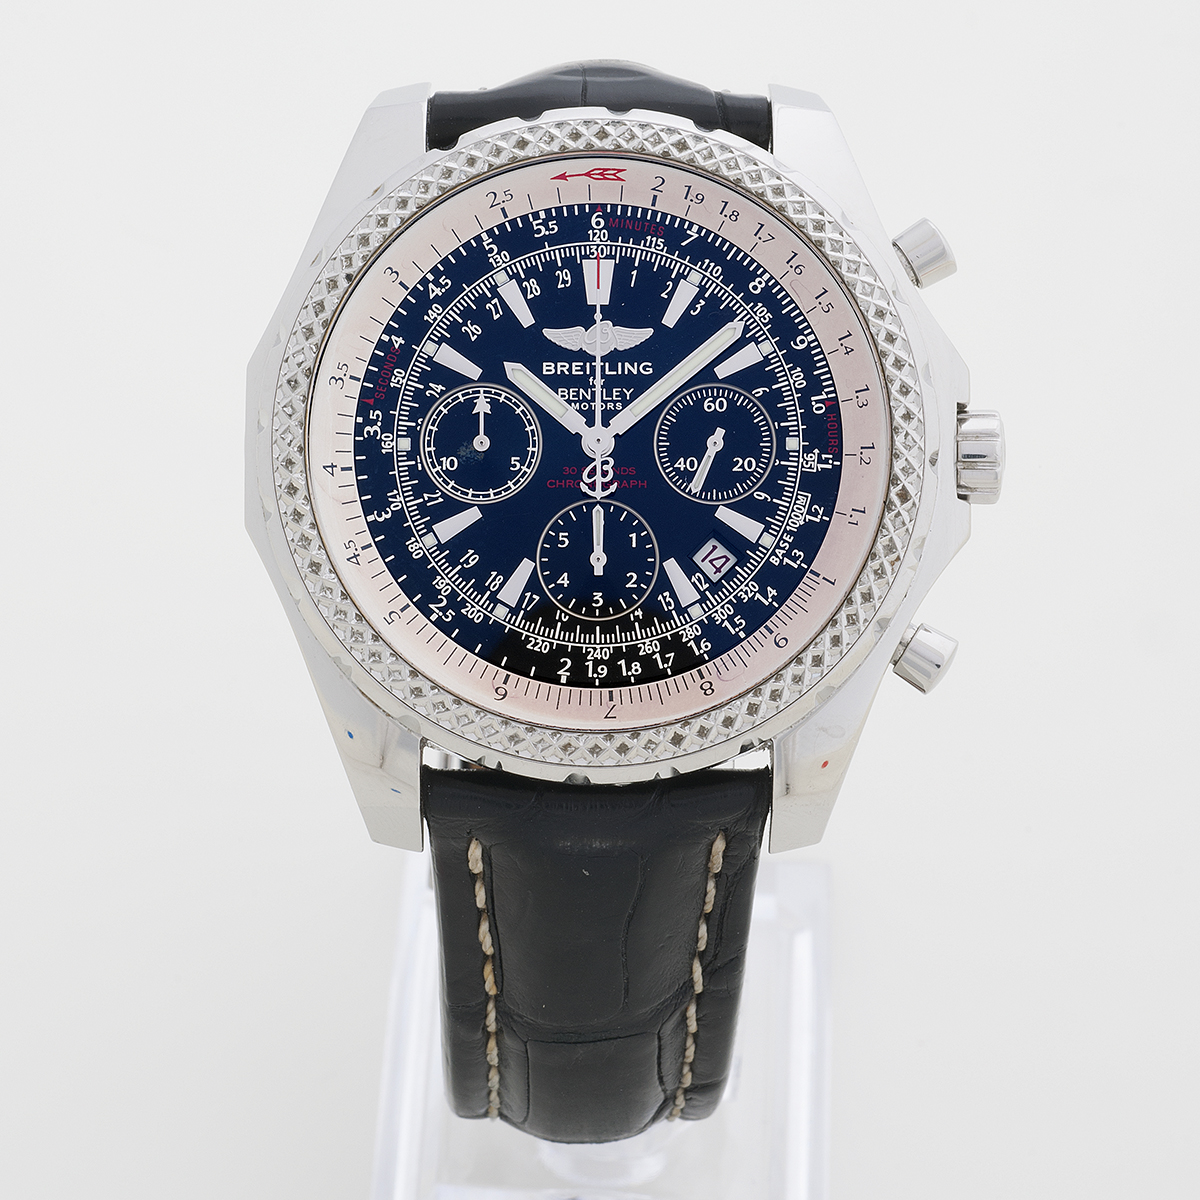 chronograph bentley chronometer breitling gt auto edition seconds t watch motors special ref steel in